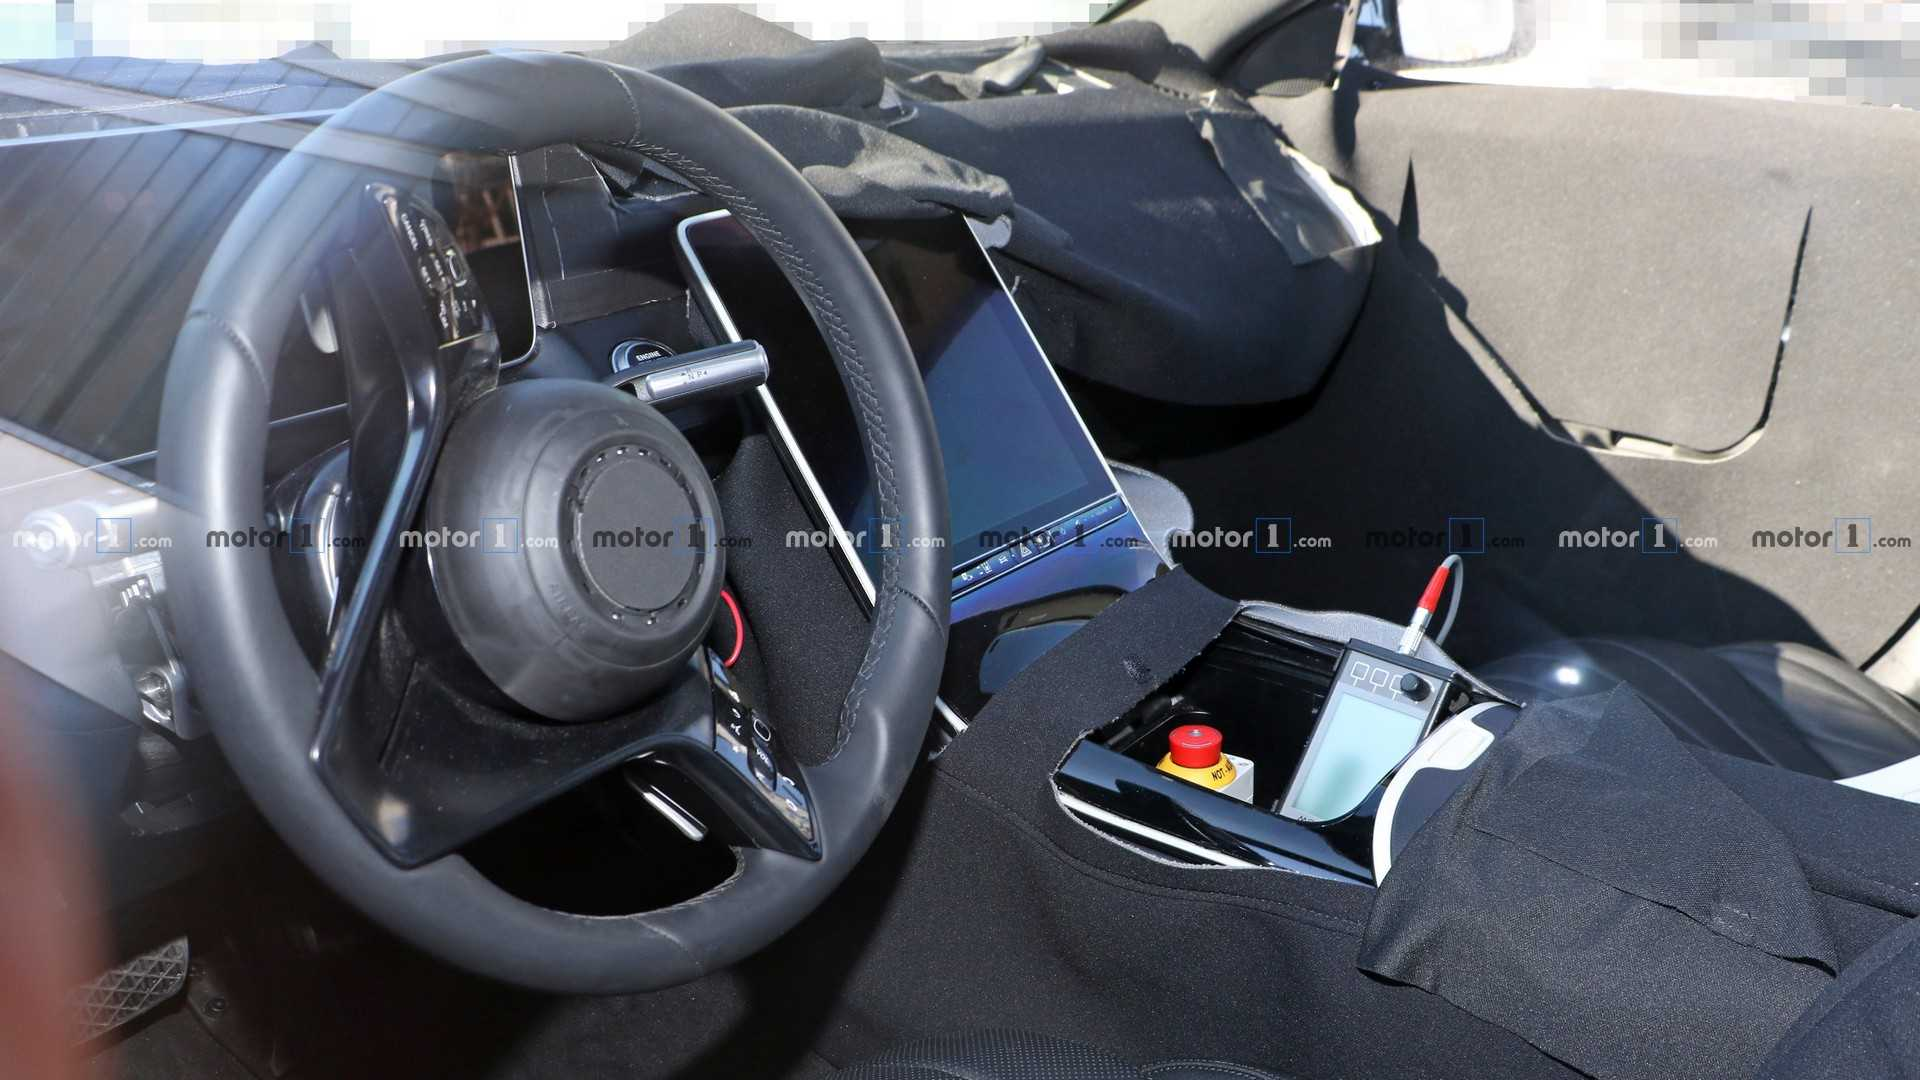 2020-mercedes-s-class-interior-spy-photo